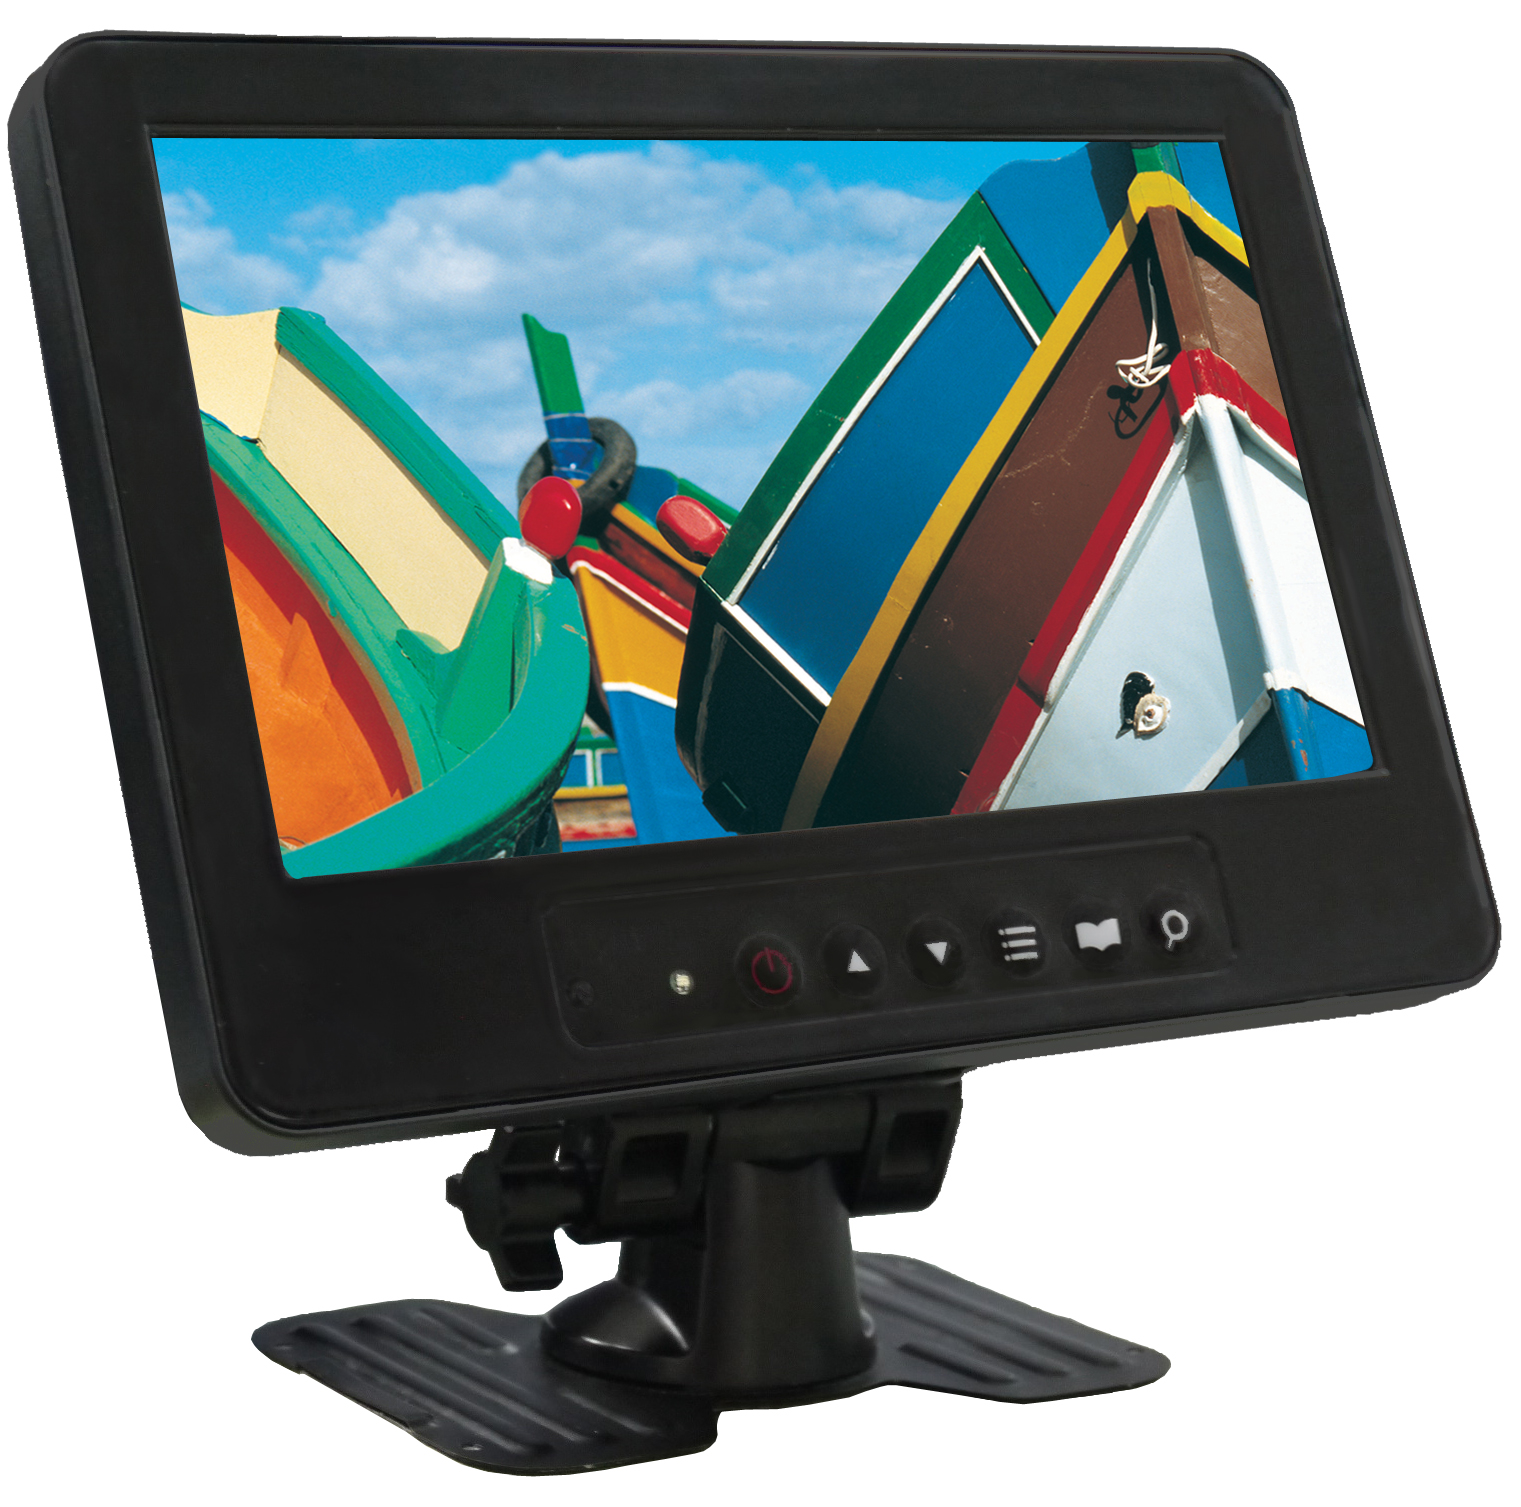 "L80AP 8"" TFT LCD Colour Video Monitor"